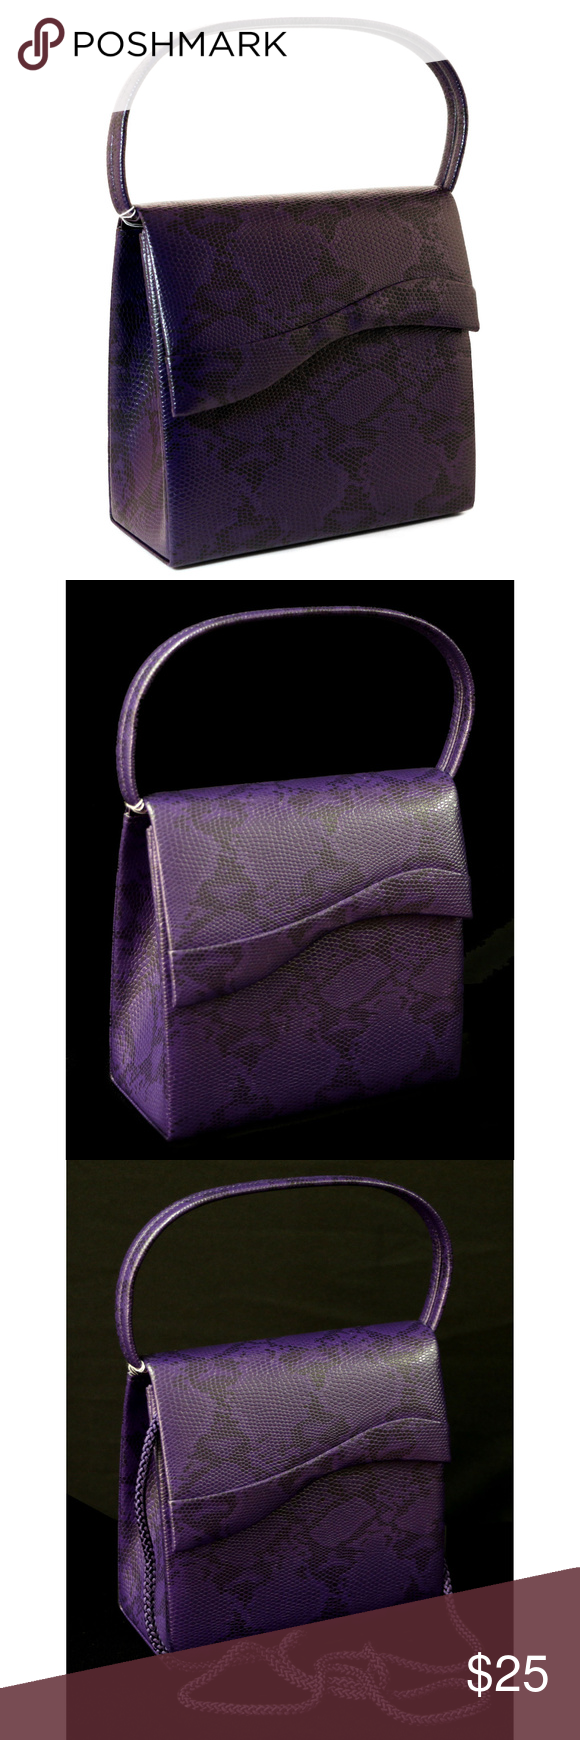 Purple & Black Snake-Skin Print Hand Bag PS489PPP Purple & Black Snake-Skin Print Fashion Hand Bag Clutch Purse With Magnetic Snap Closure PS489PPP This elegant handbag is made of premium faux snakeskin leather and lined with polyester cloth, wear resistant and durable Purse dimensions (W x H):7.5 x 6 inches, a perfect size for you to carry comfortably Embossed snakeskin pattern, faux pvc leather - stylish sexy design that attracts people's attention whenever holding it Braidedshoulder strap & carry straps, can be used as a tote handbag Mi Amore Bags Clutches & Wristlets